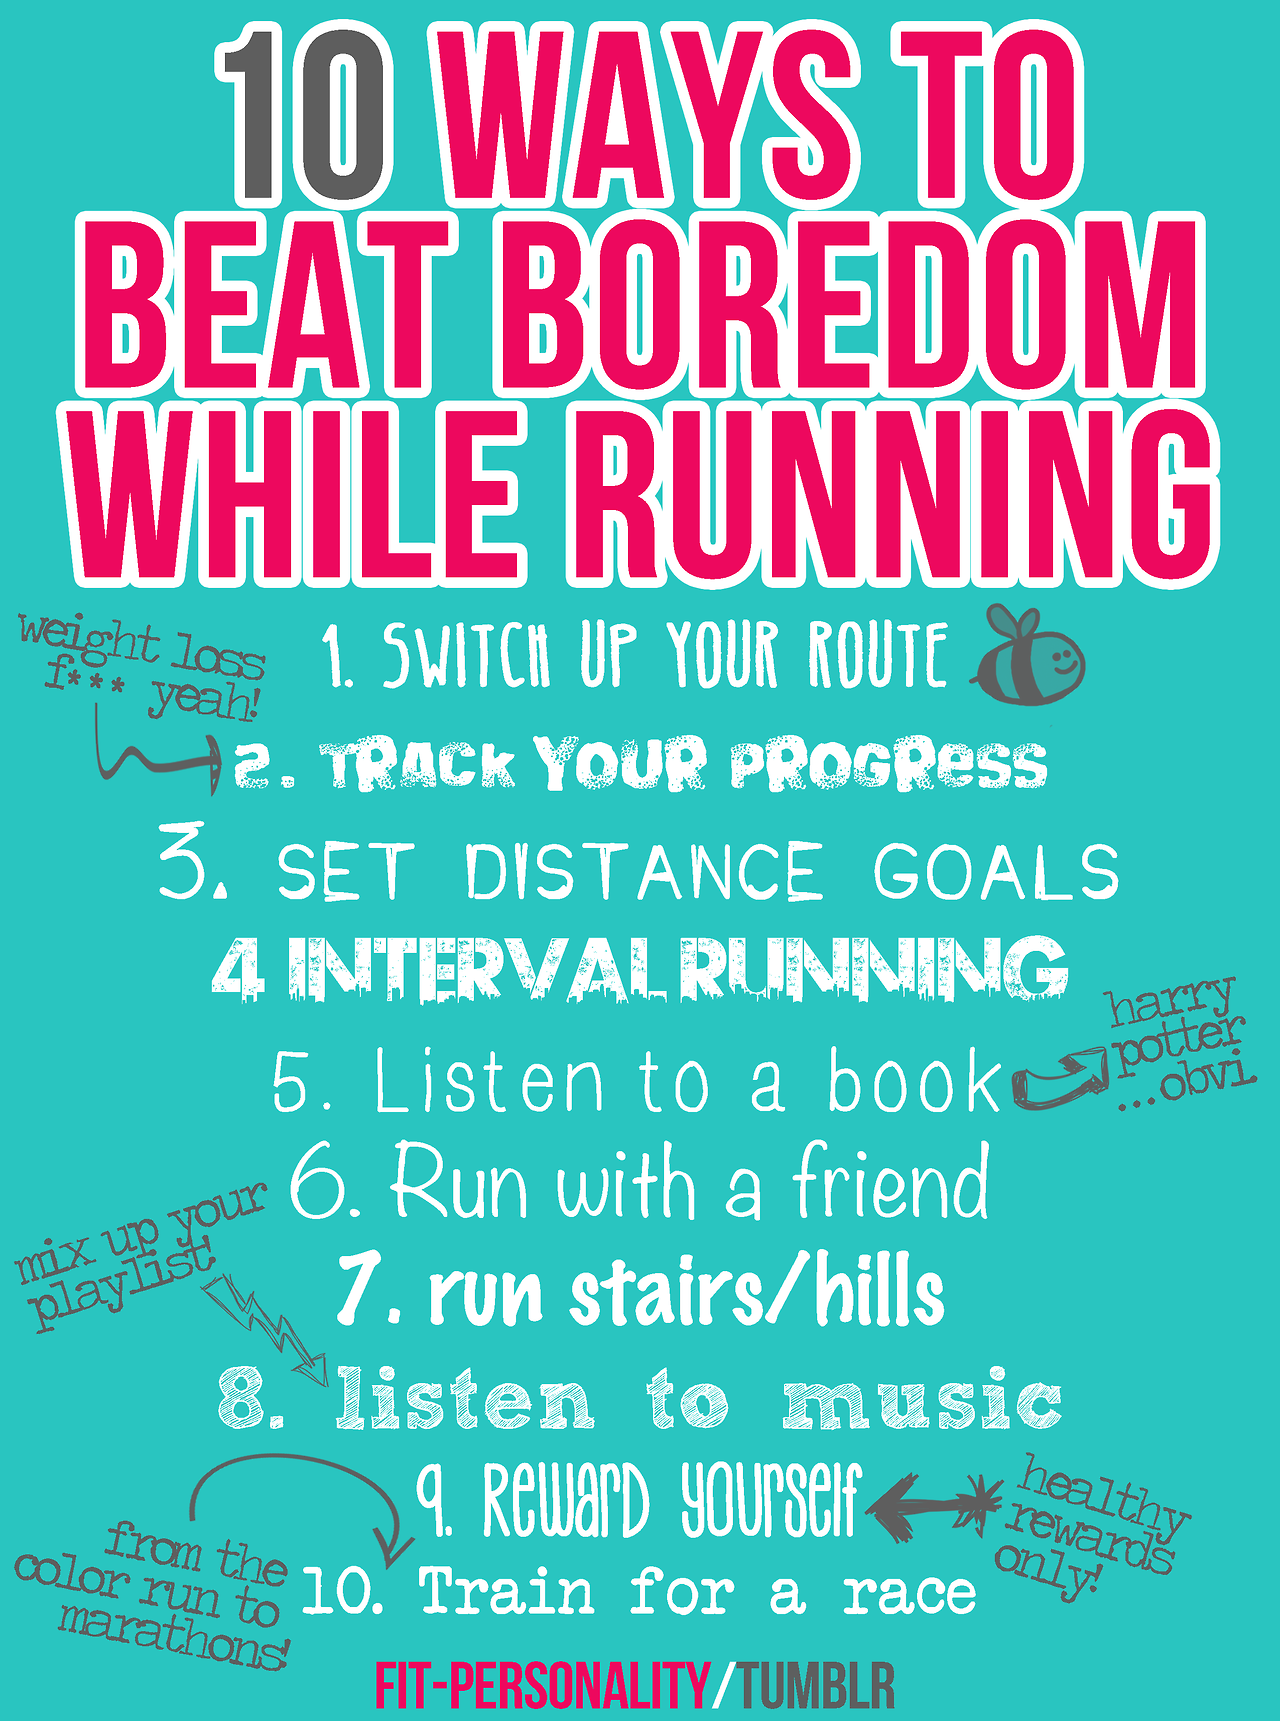 How to Beat Boredom on the Weekend